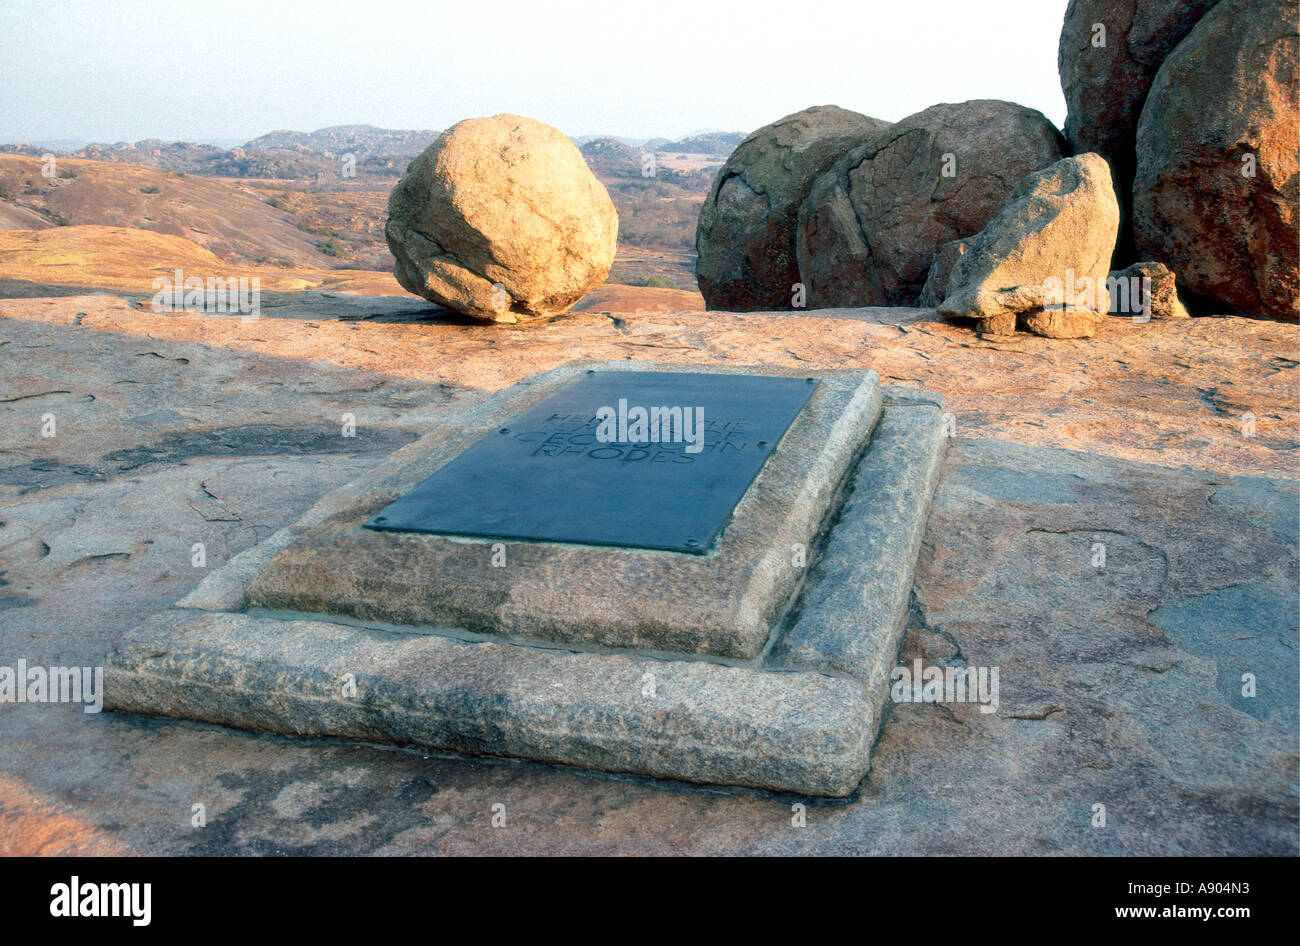 The grave of Cecil John Rhodes at World s view in Matobo National Park Zimbabwe Africa - Stock Image